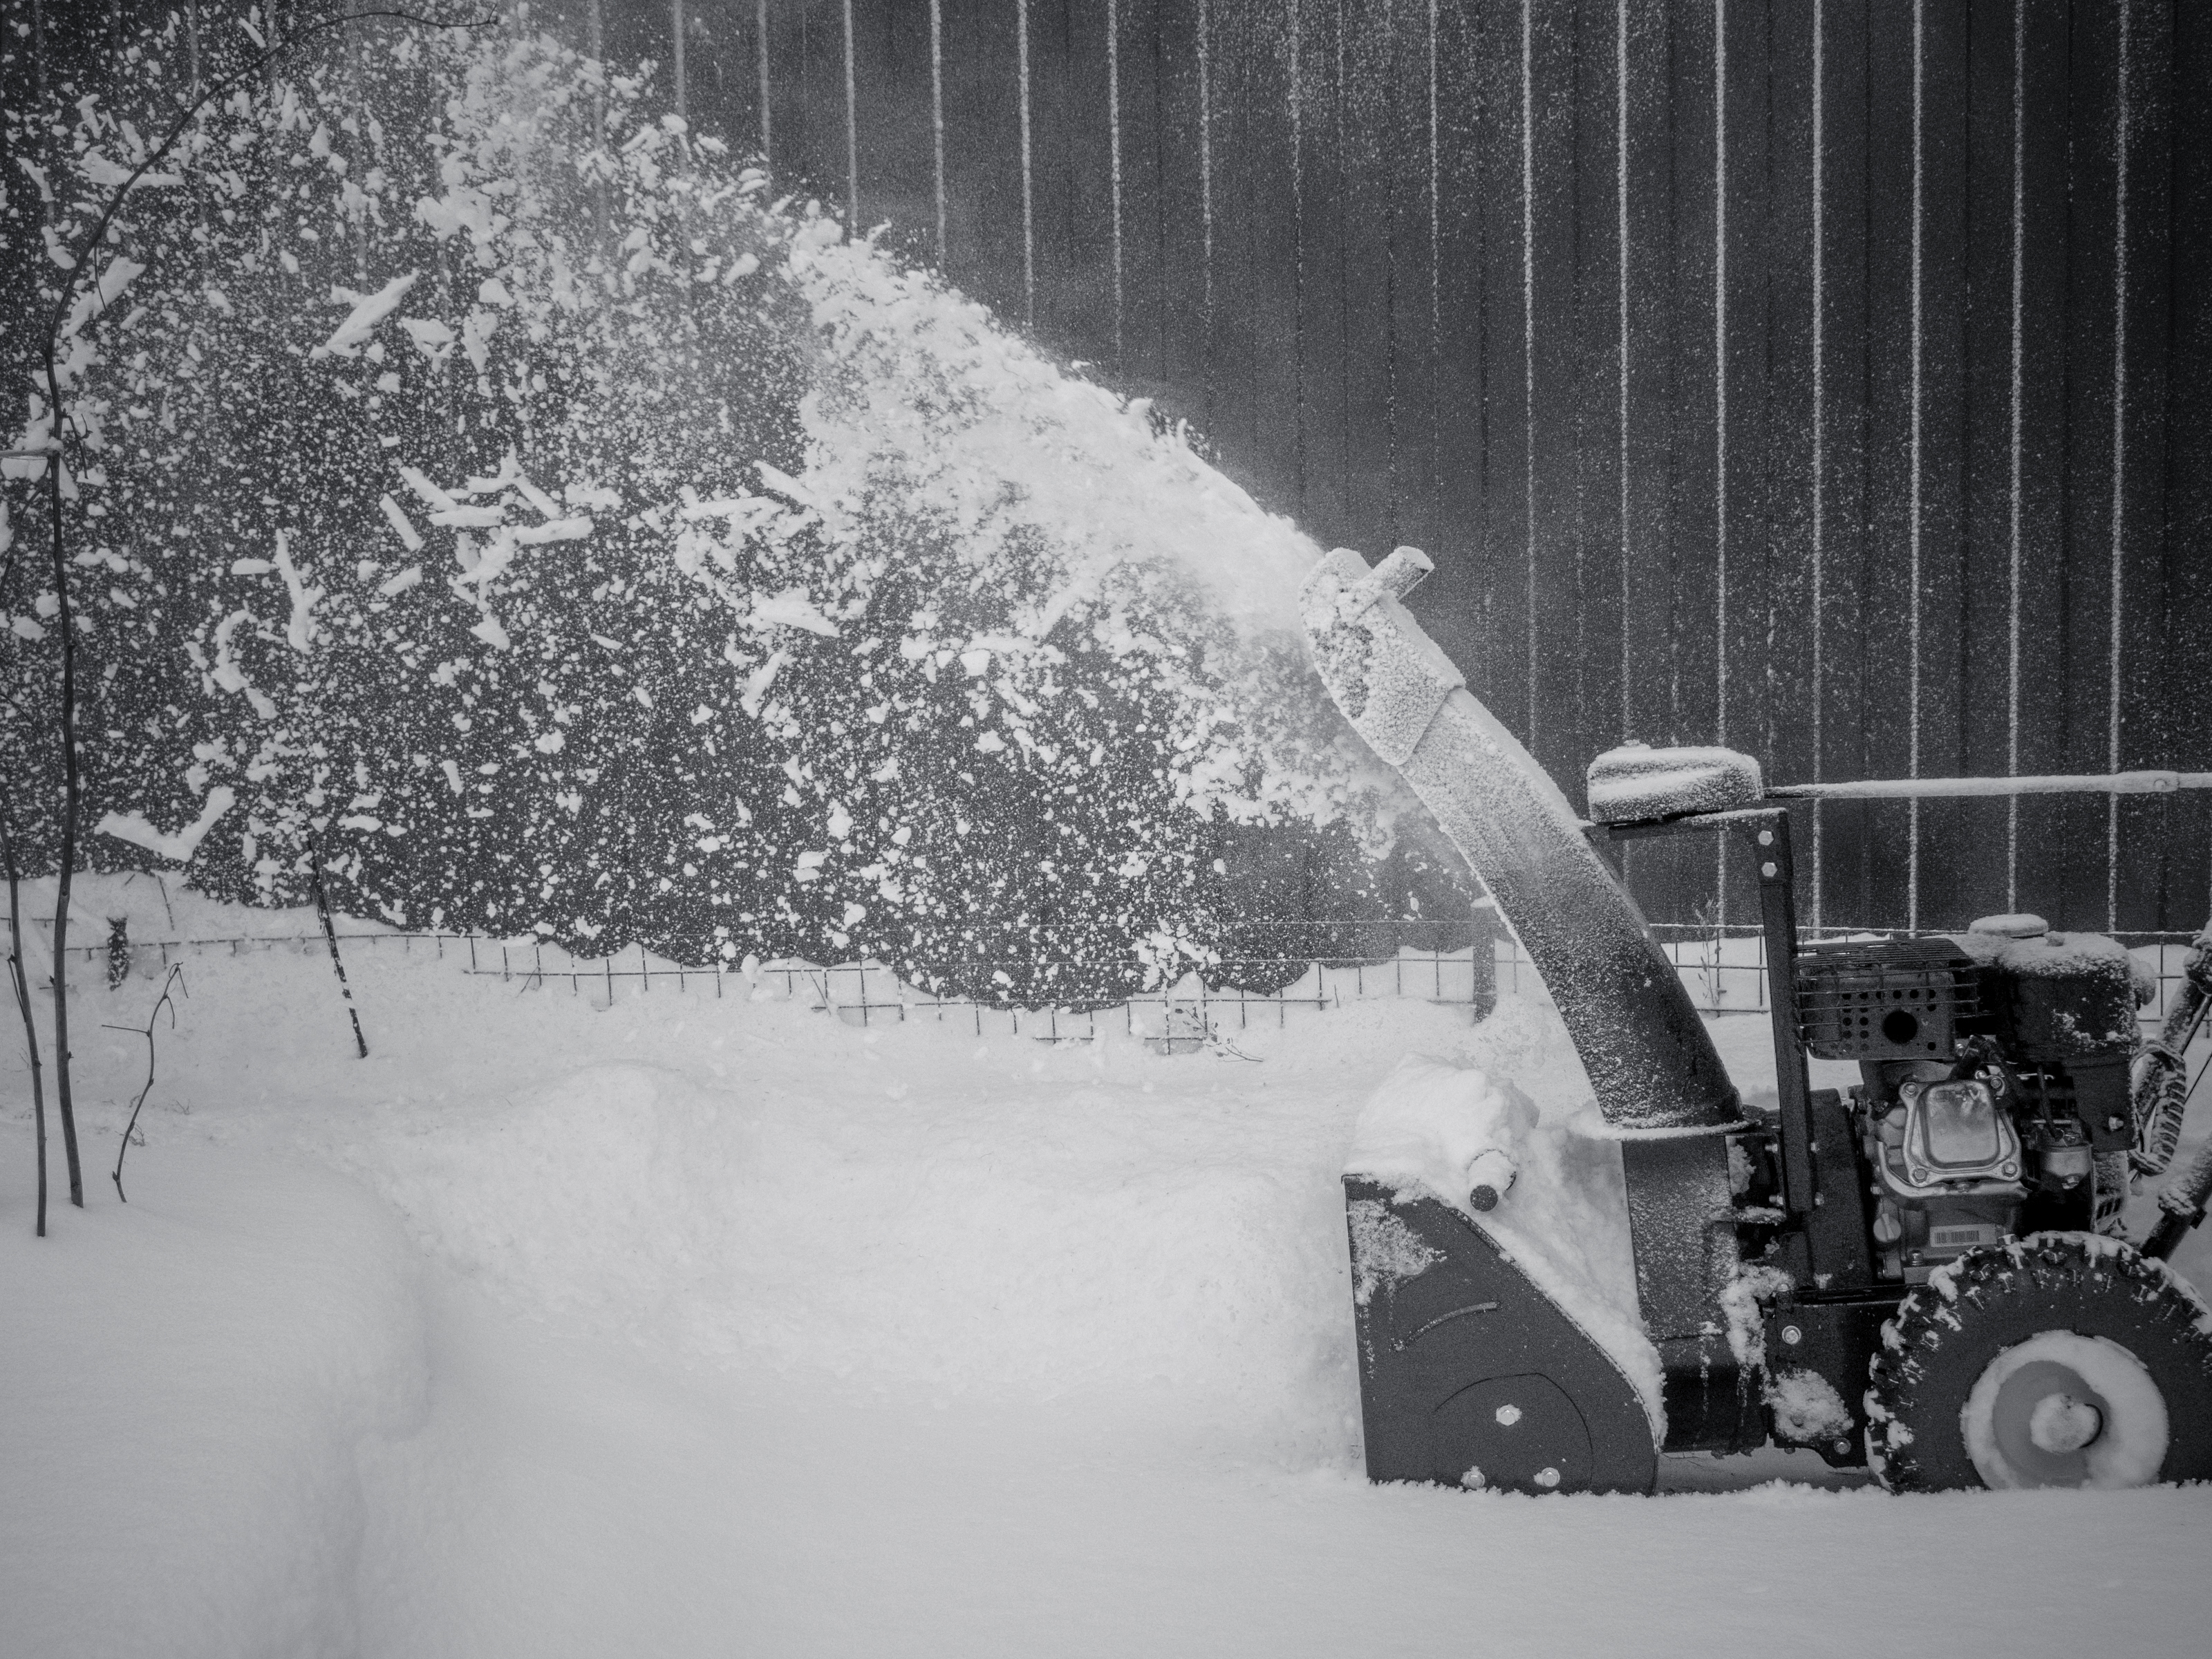 snowblower-at-work-on-a-winter-day-PWHJXQ4 (1)